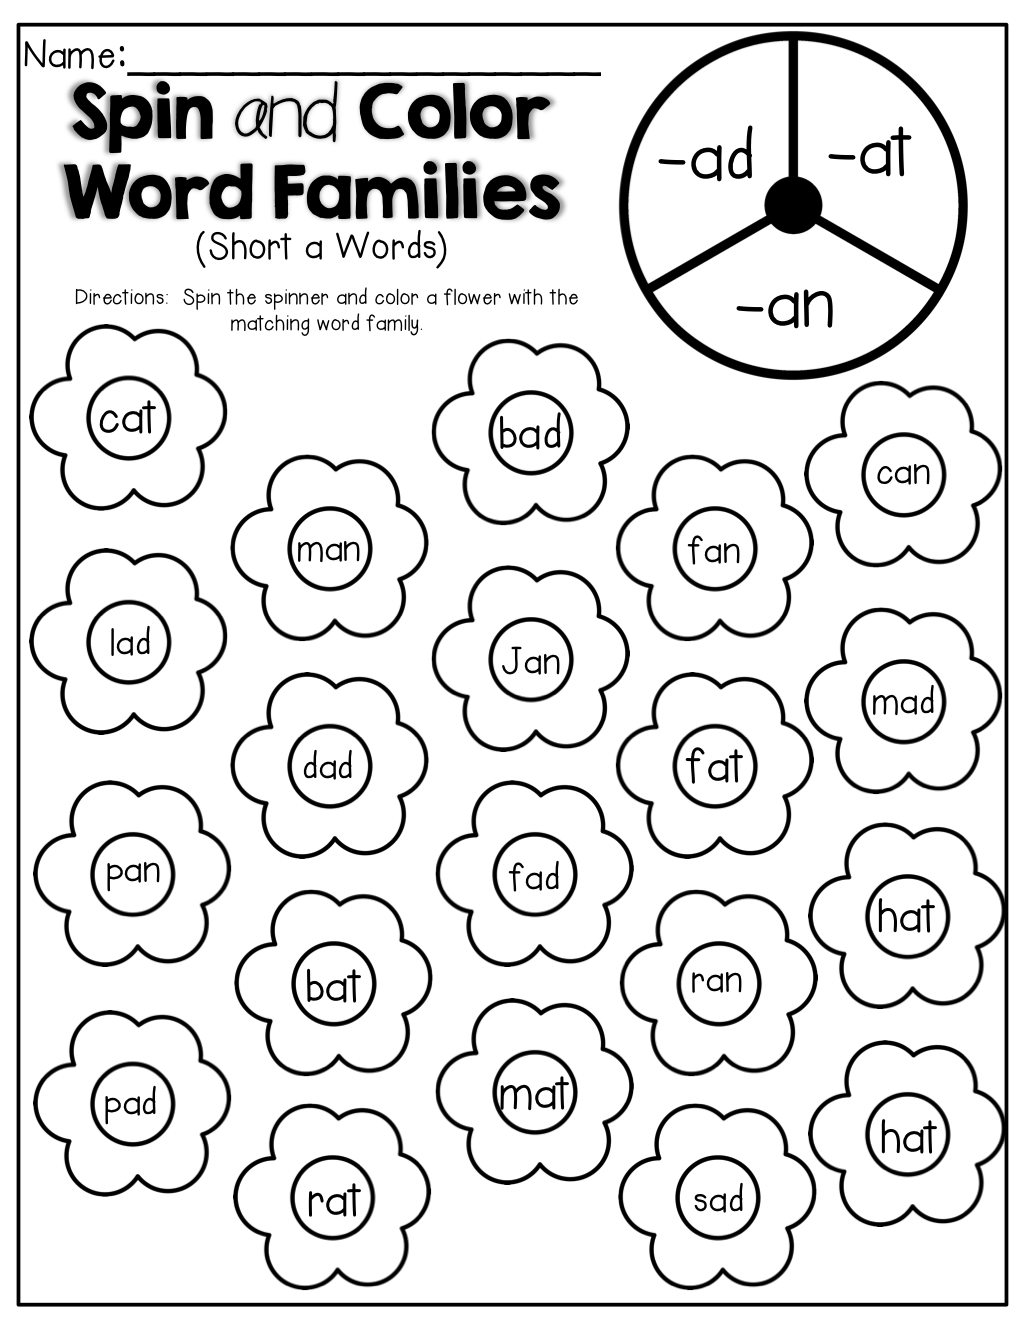 Spin and Color a Word Family Flower! Short a words! Word